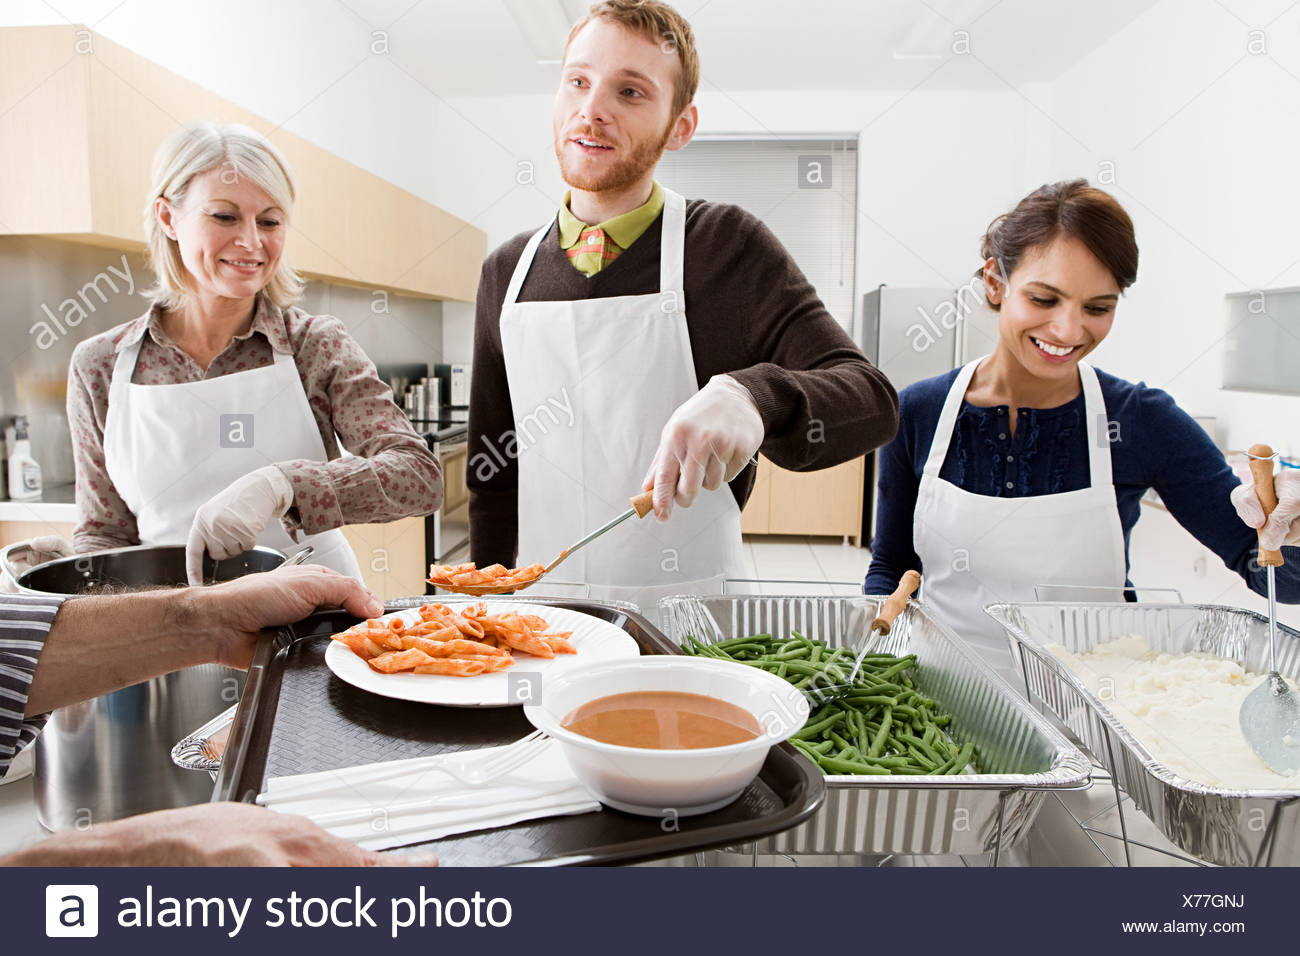 People Volunteering At Soup Kitchen Stock Photo: 279835294 ...